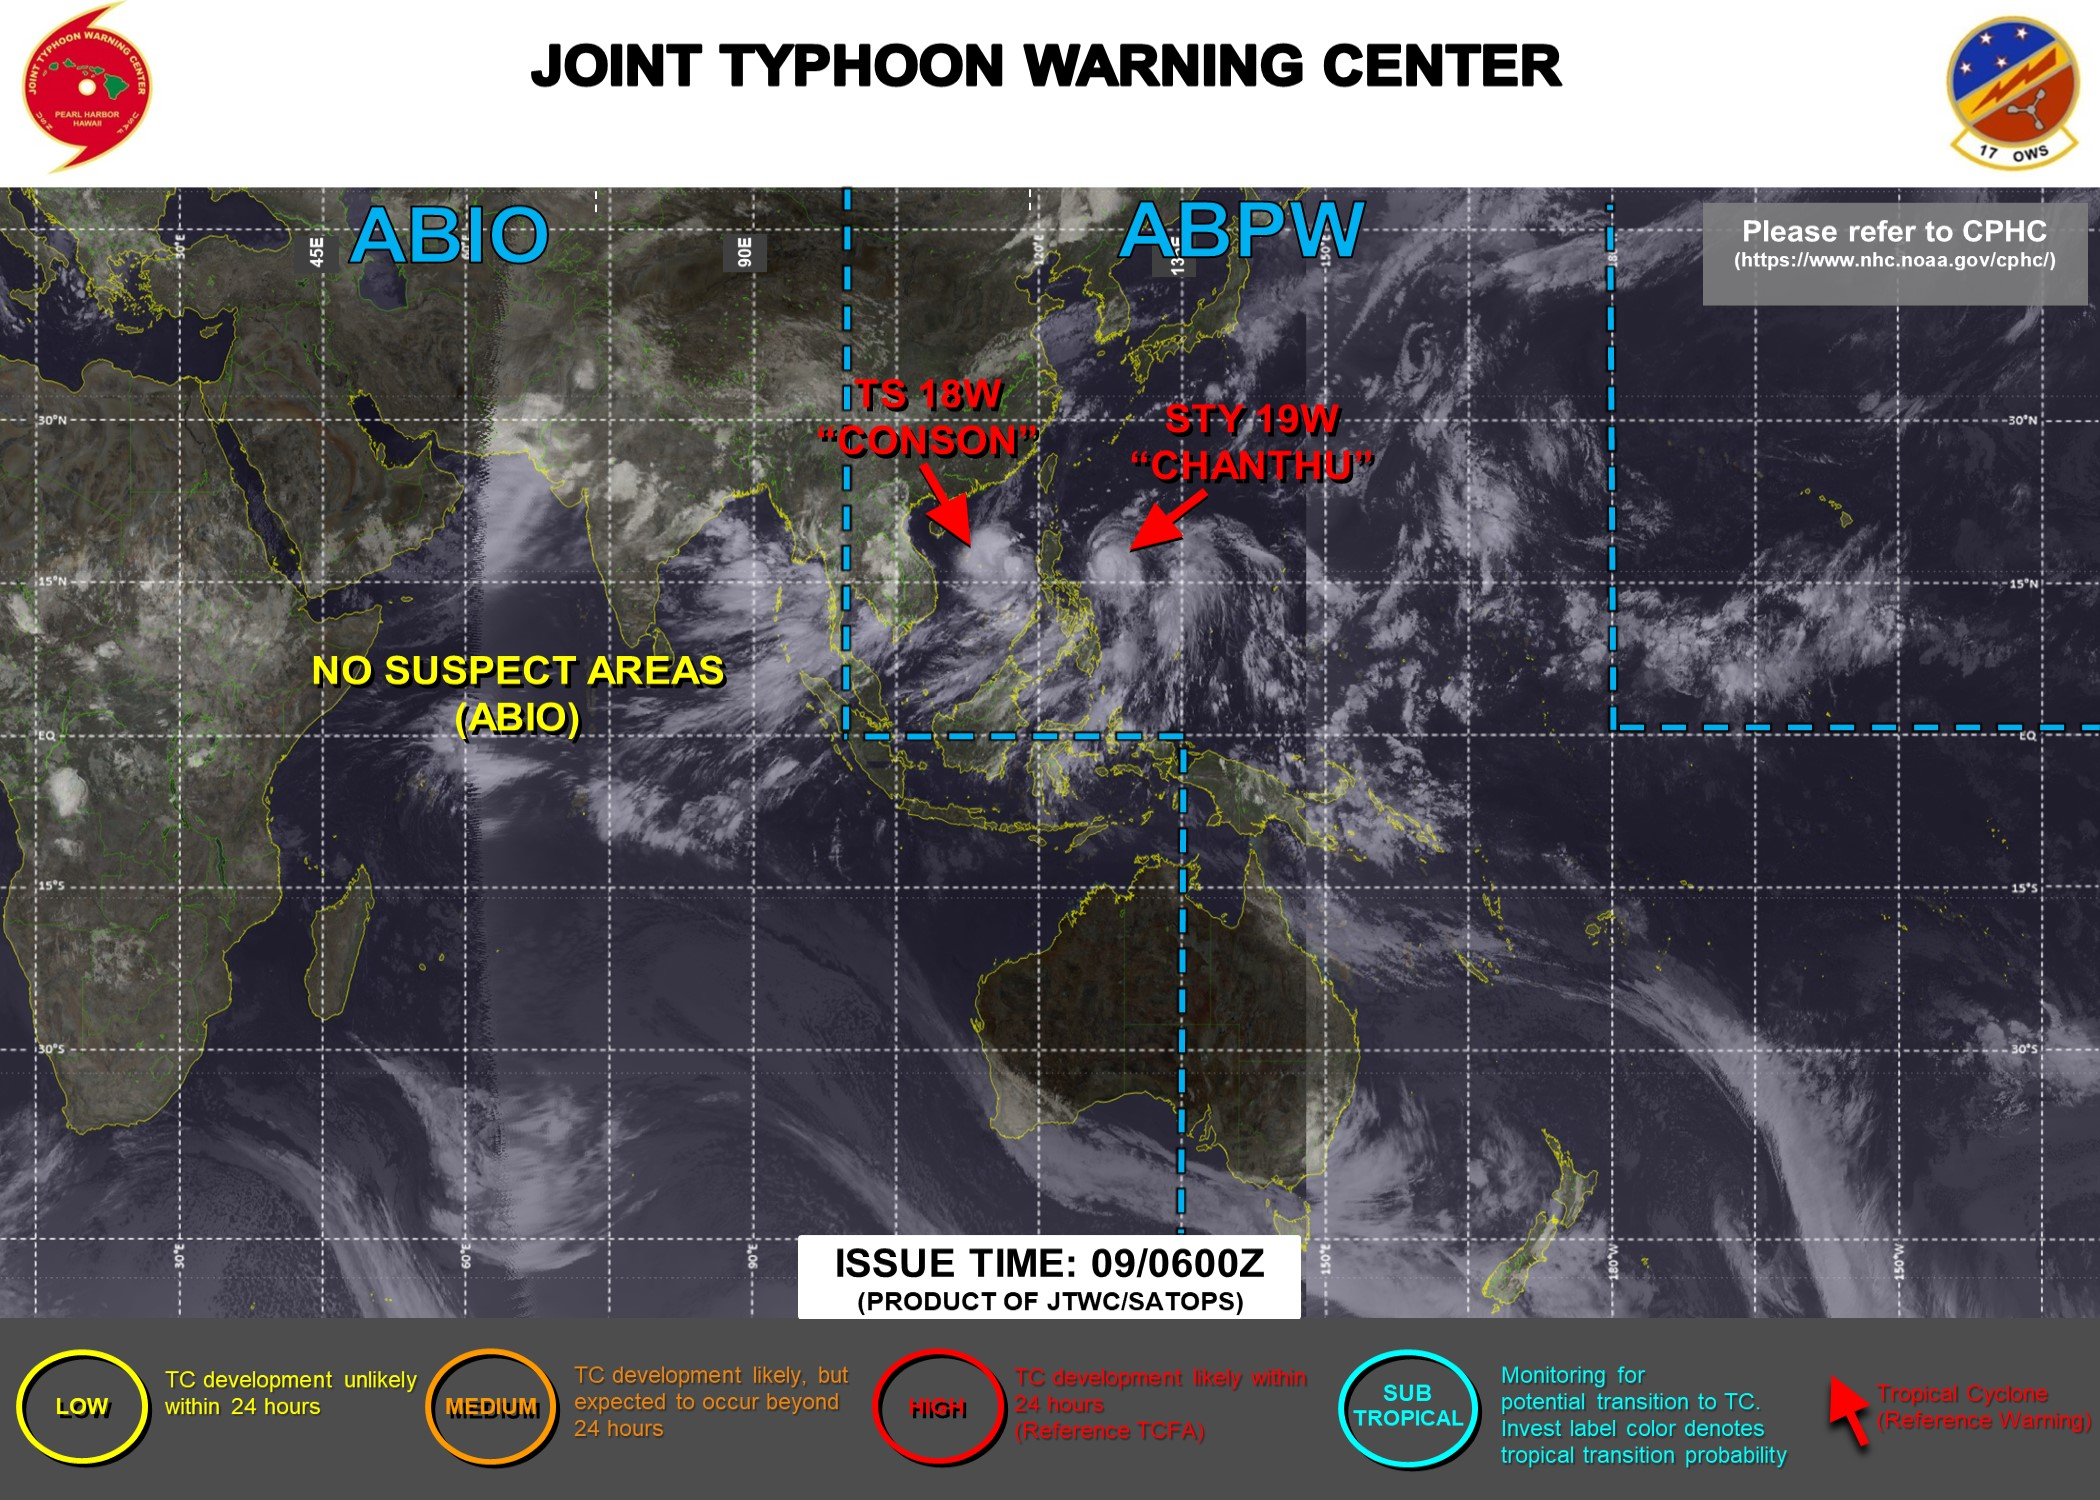 Western Pacific: 18W(CONSON) gaining strength over South China Sea/Super Typhoon 19W(CHANTHU) back at CAT 5 over the Philippine Sea,EPacific & Atlantic updates,09/03utc